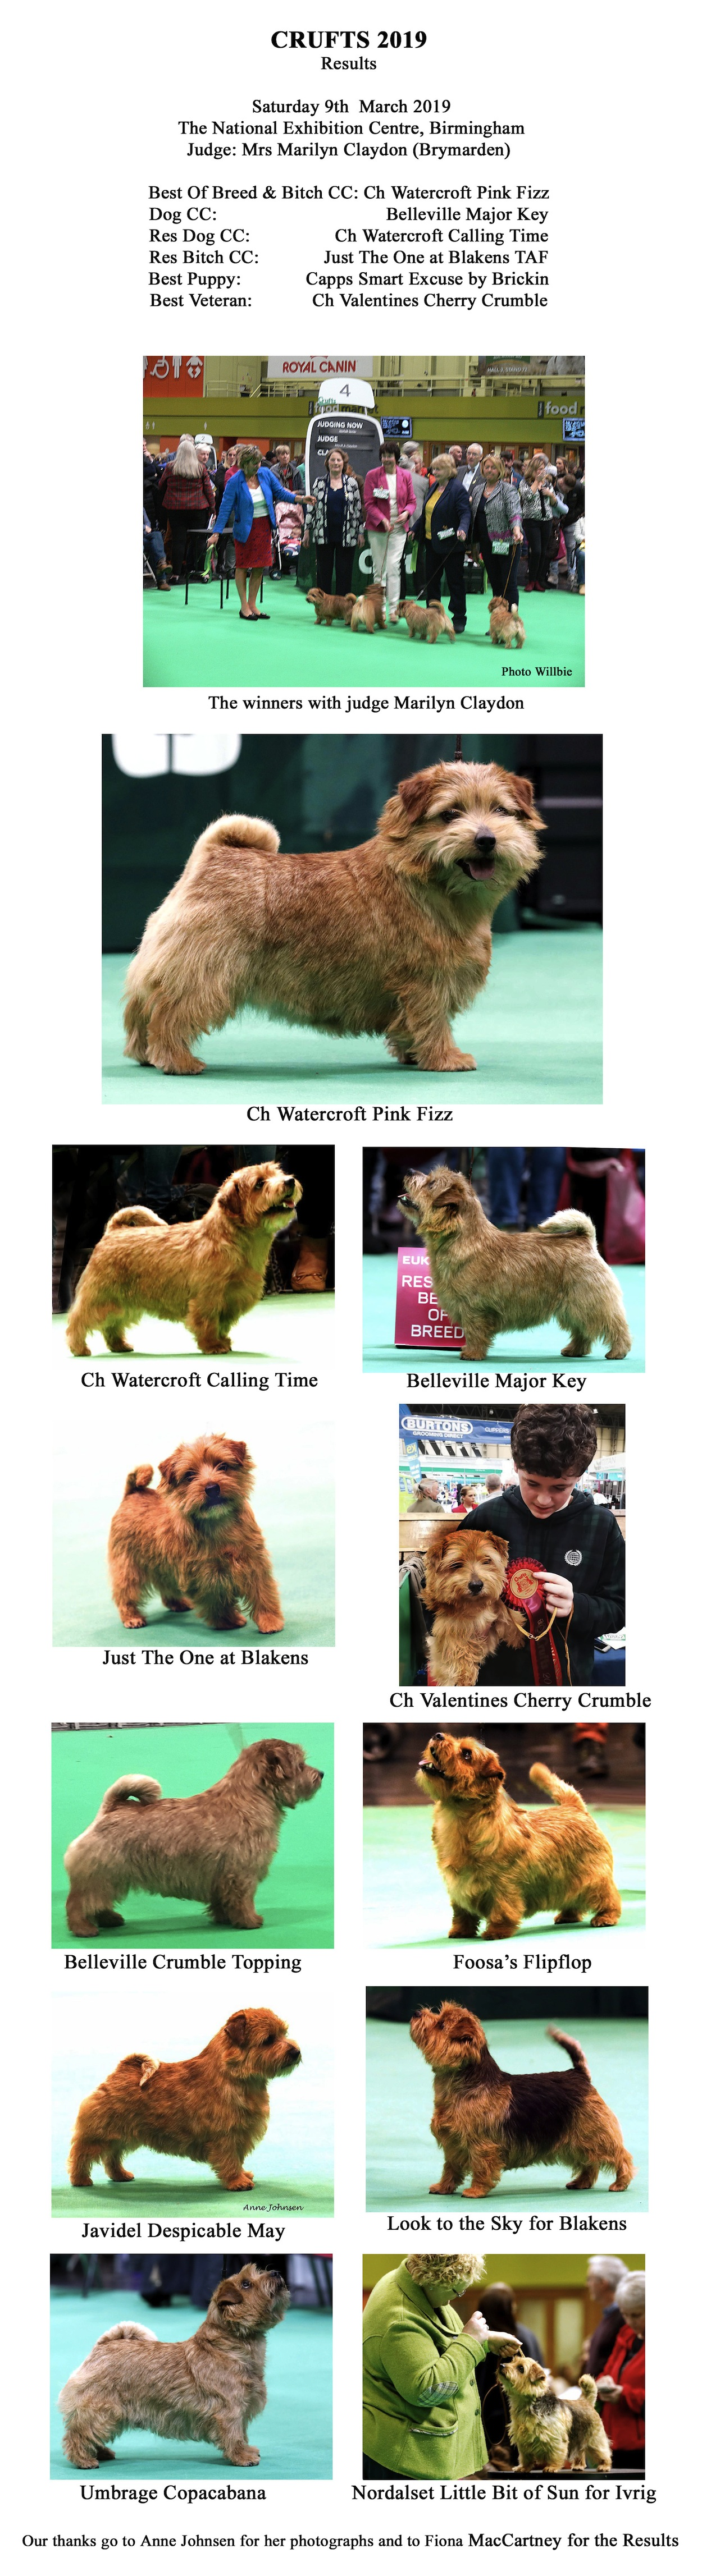 CRUFTS 2019 Winners